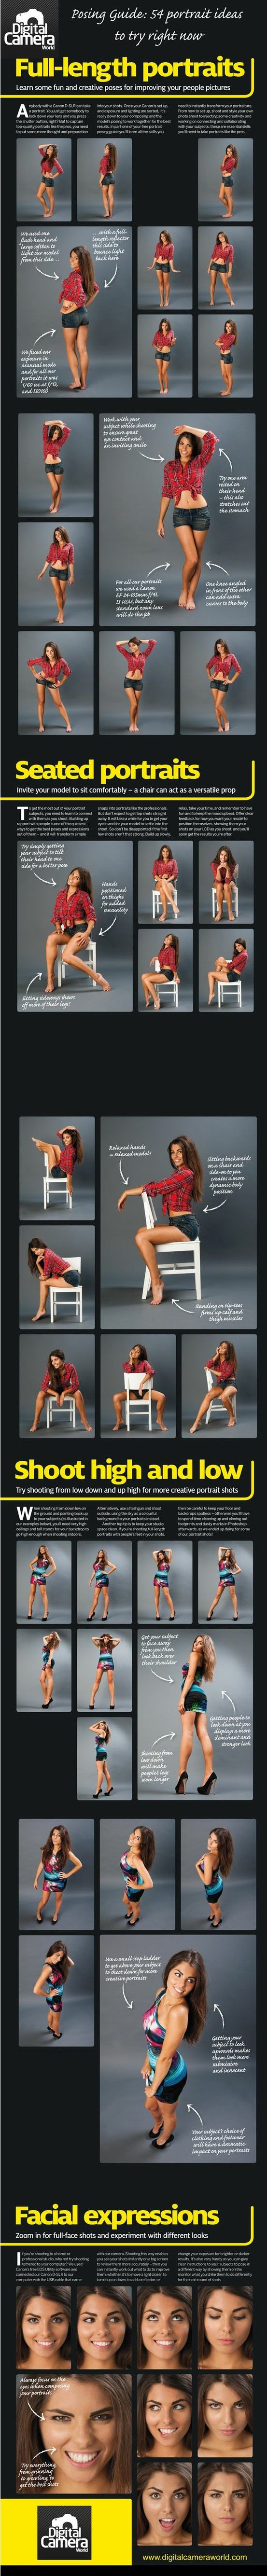 I'm SO sorry that this girl is dressed innapropriately, for the record I do NOT support her clothing choice. But I do love some of these poses for my senior pictures.